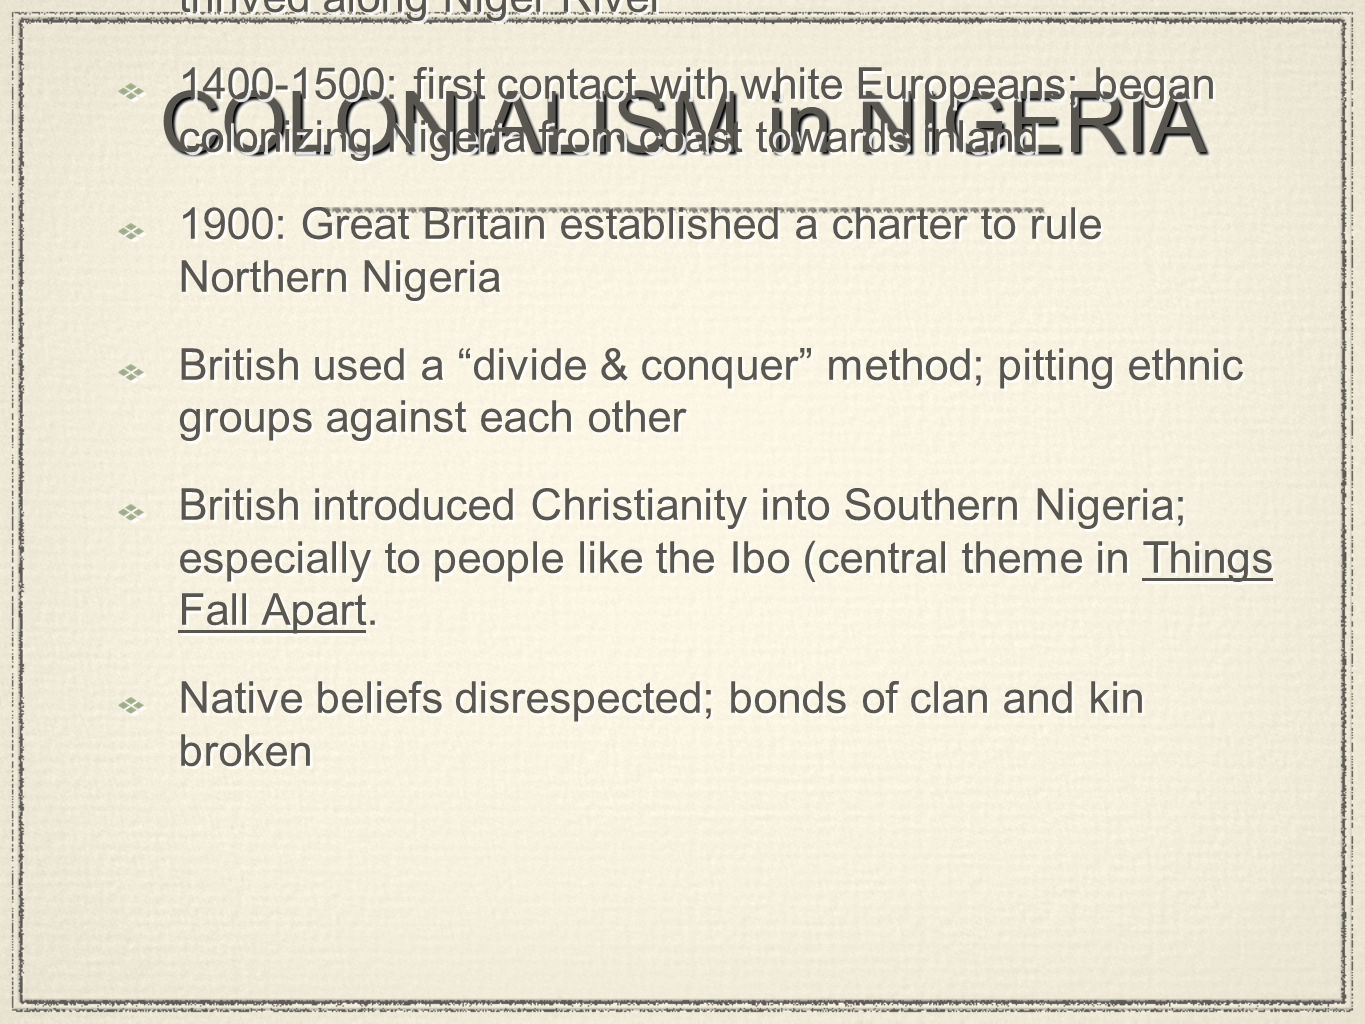 1100 - 1400: major African civilizations and tribes thrived along Niger River 1400-1500: first contact with white Europeans; began colonizing Nigeria